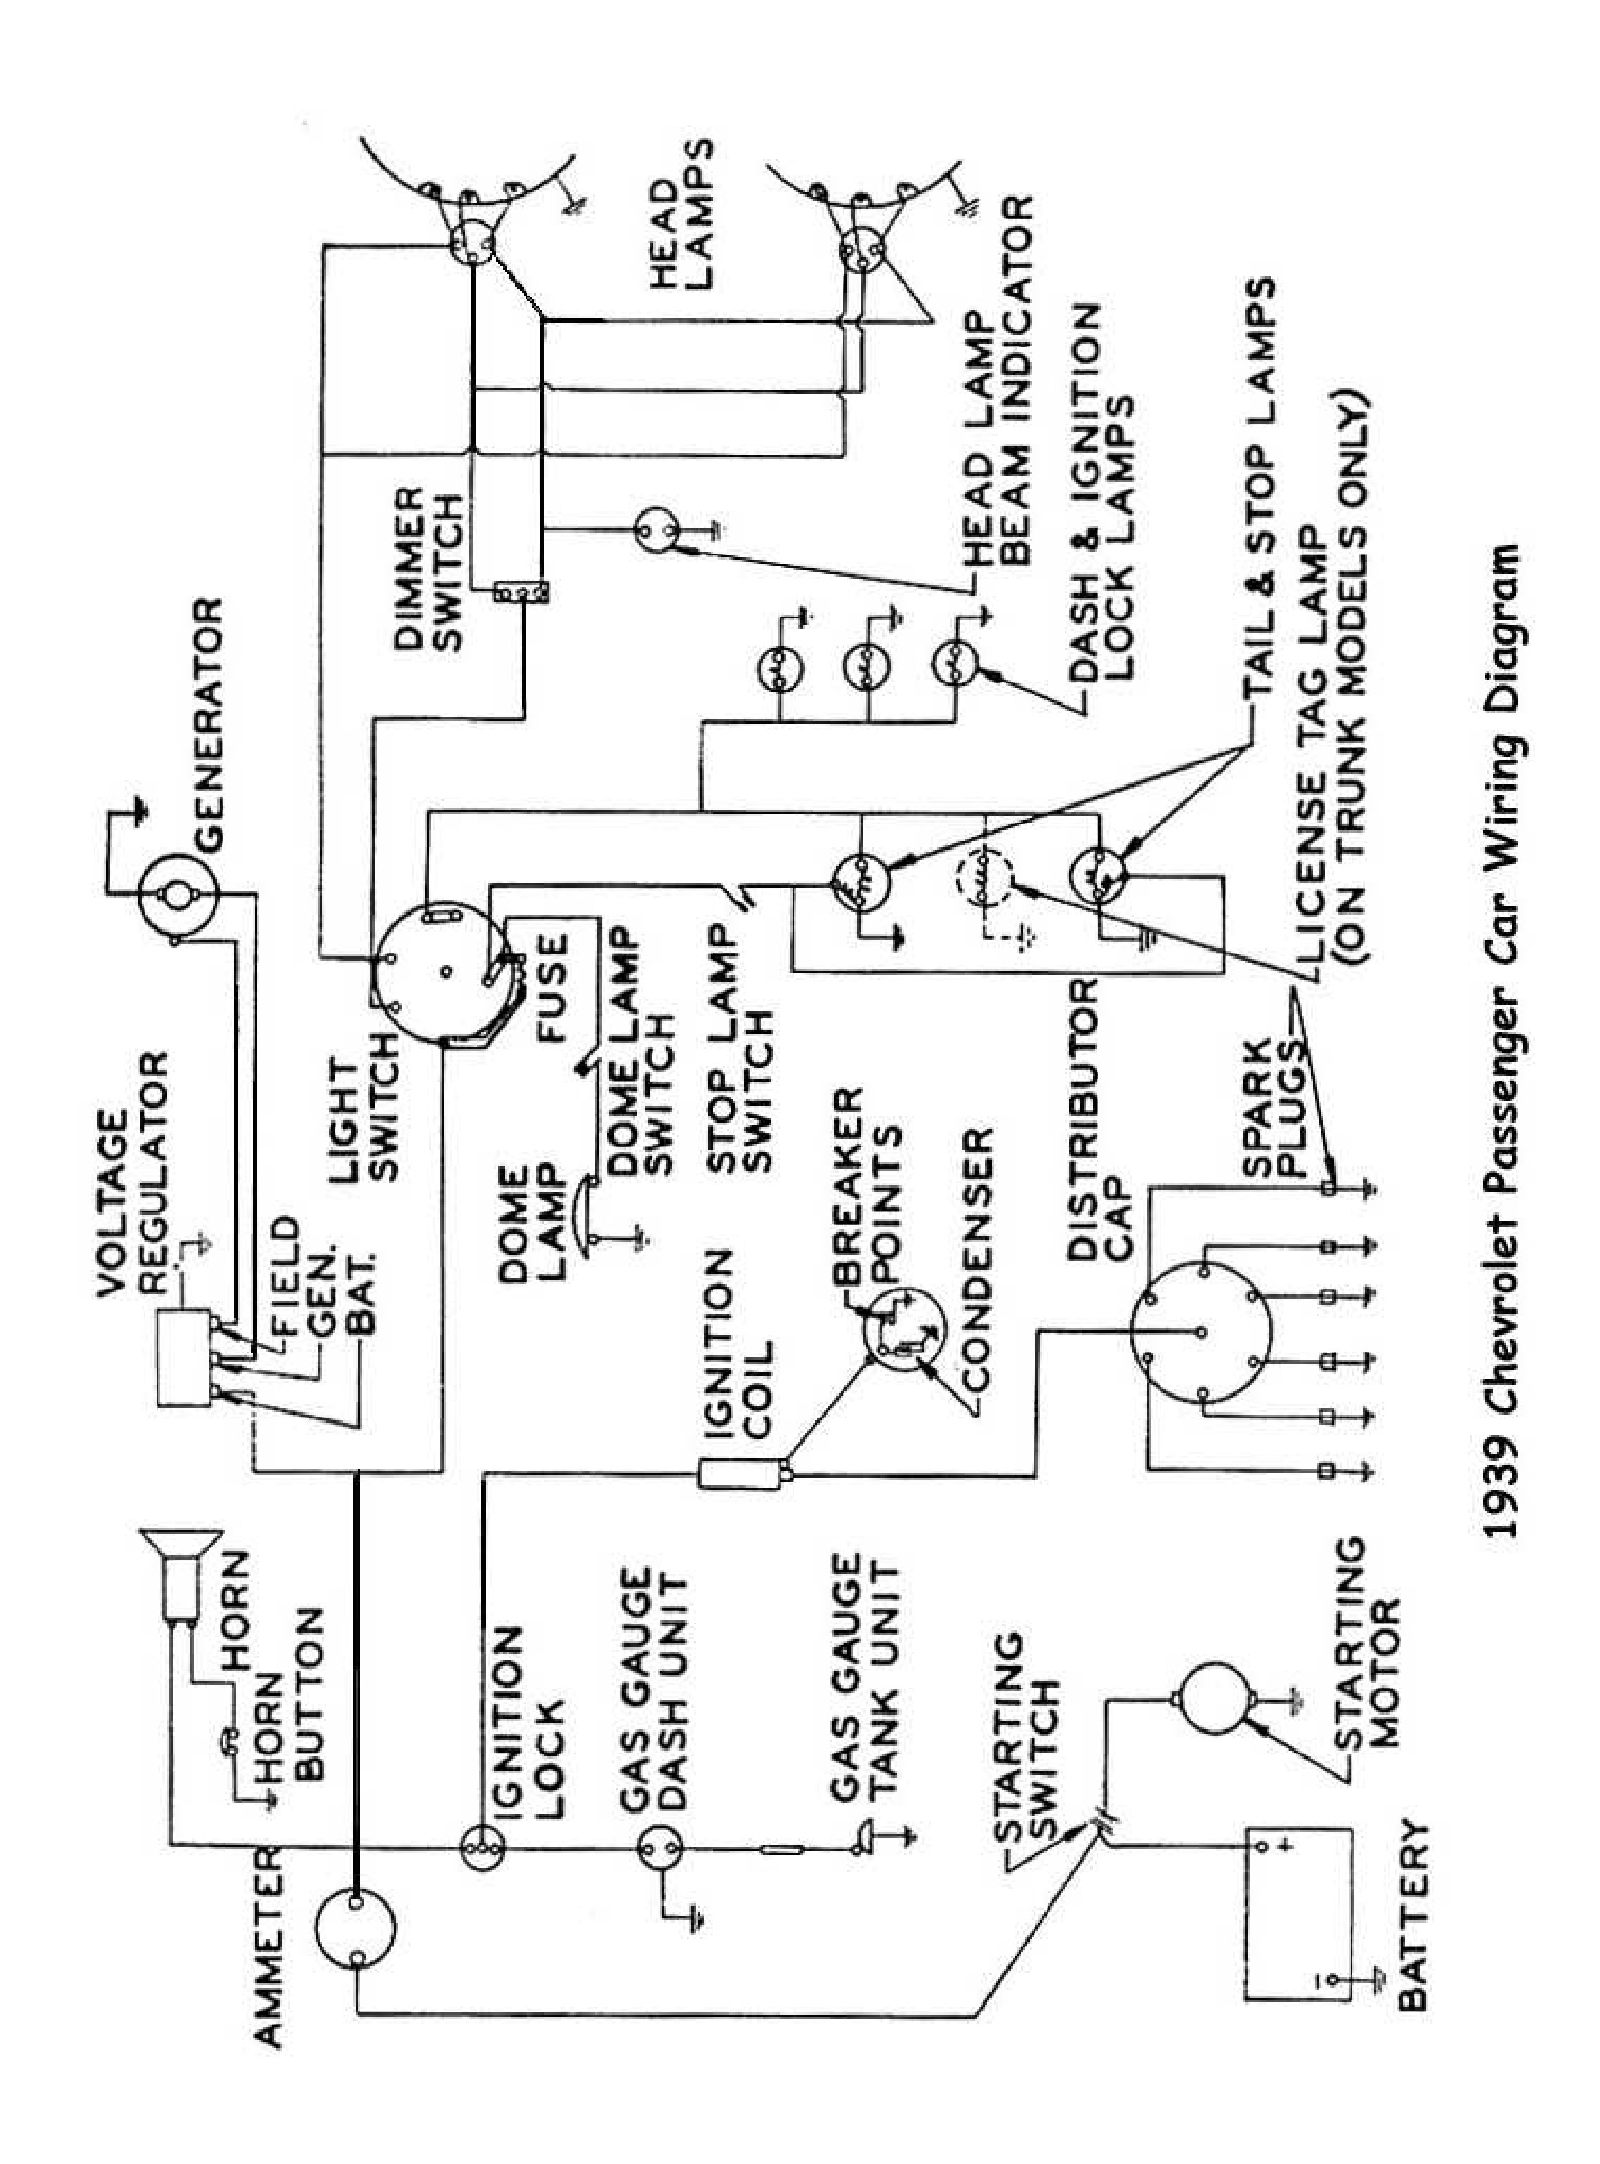 Chevy wiring diagrams 1939 passenger car wiring pooptronica